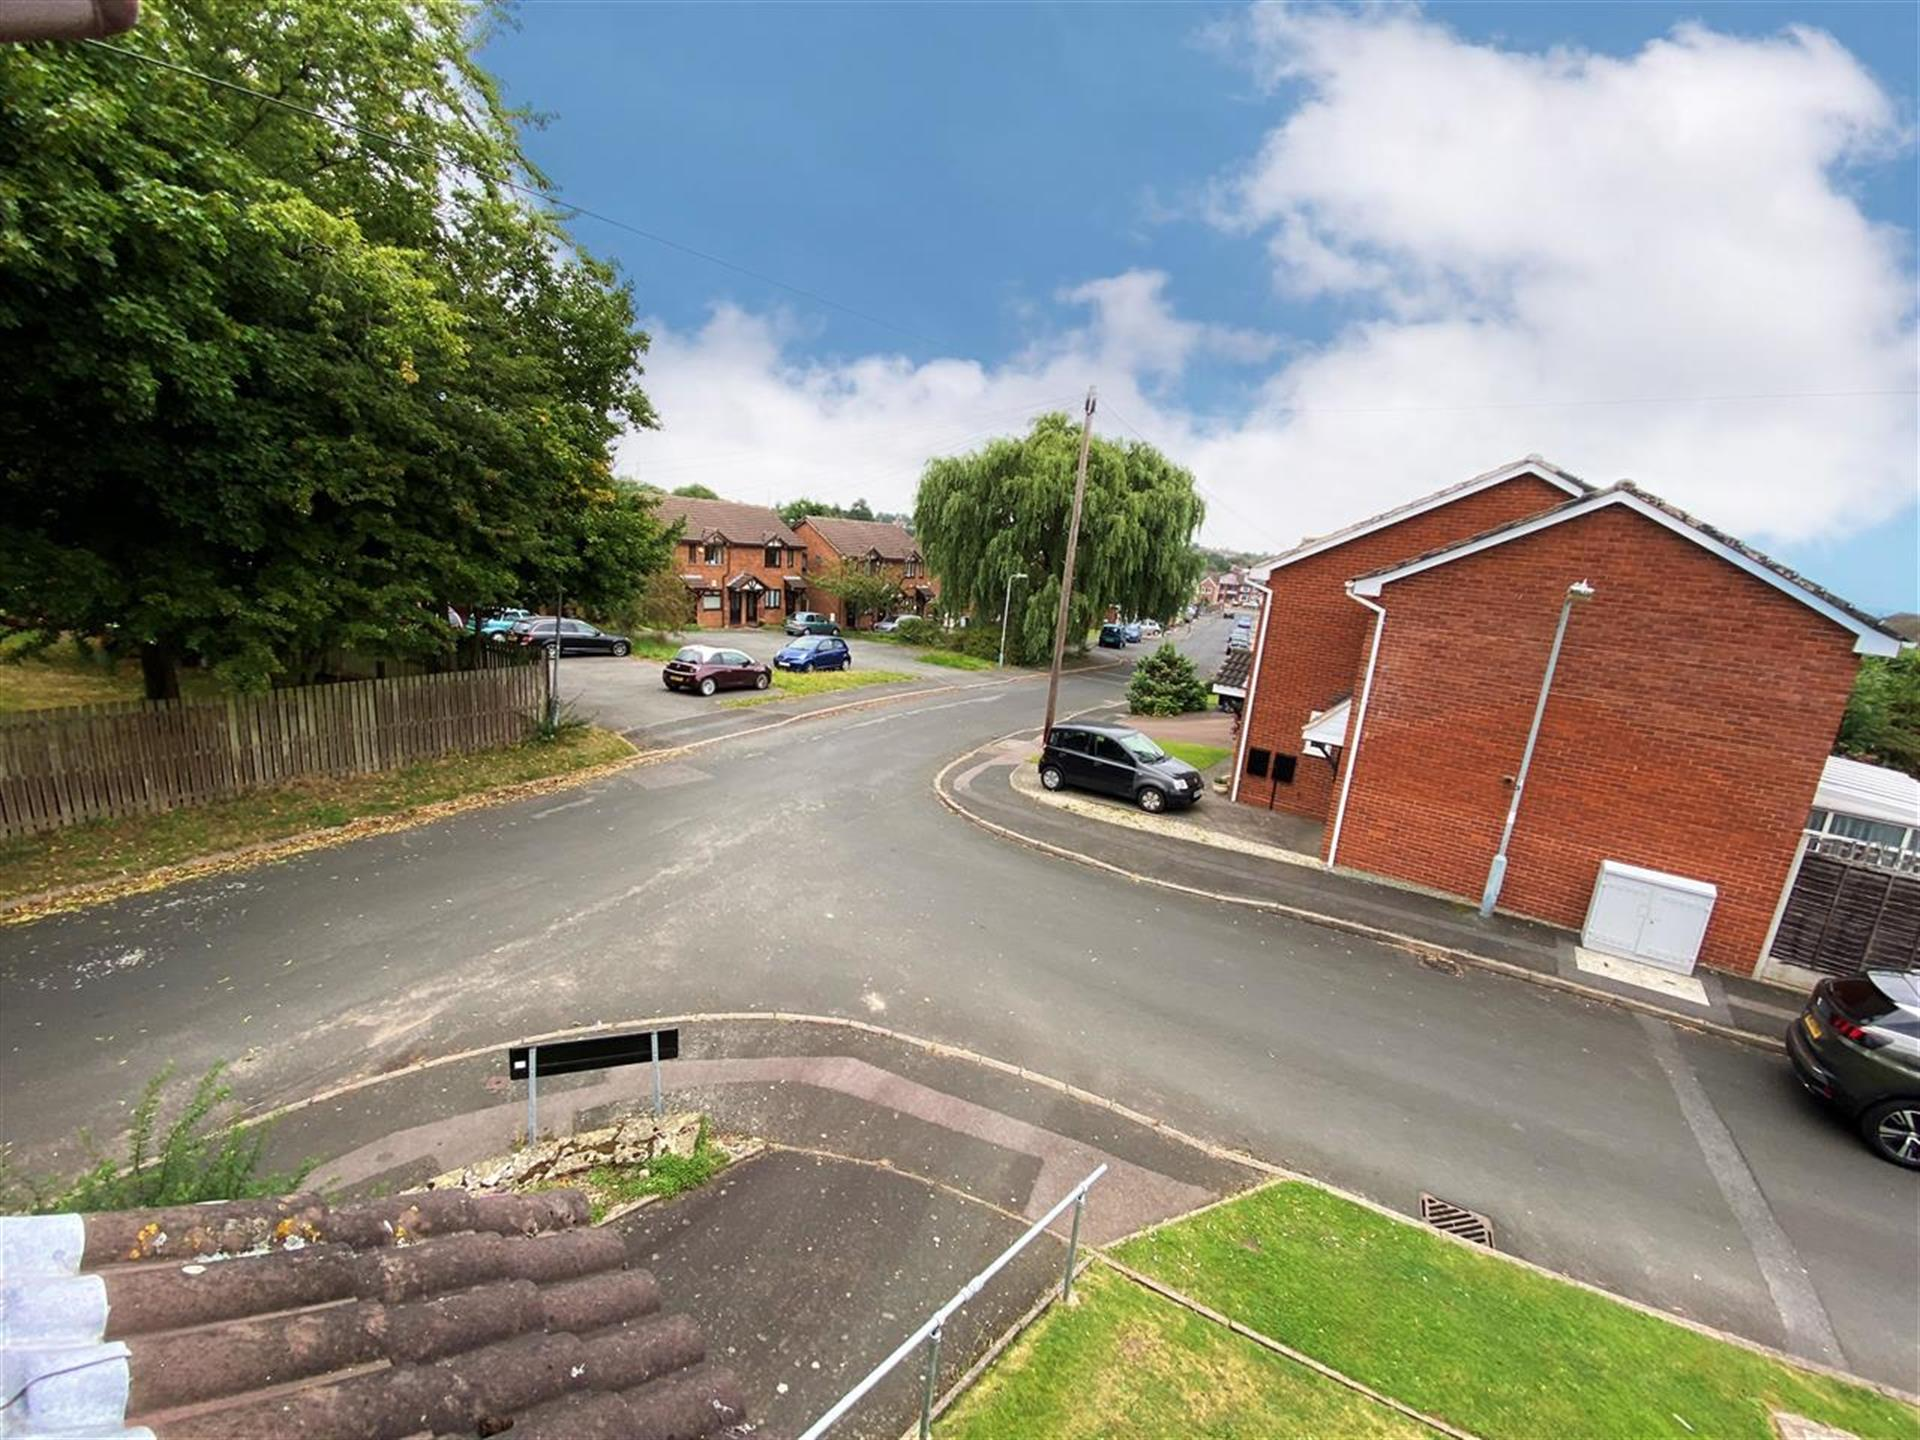 2 Bedroom Semi-detached House For Sale - Approach